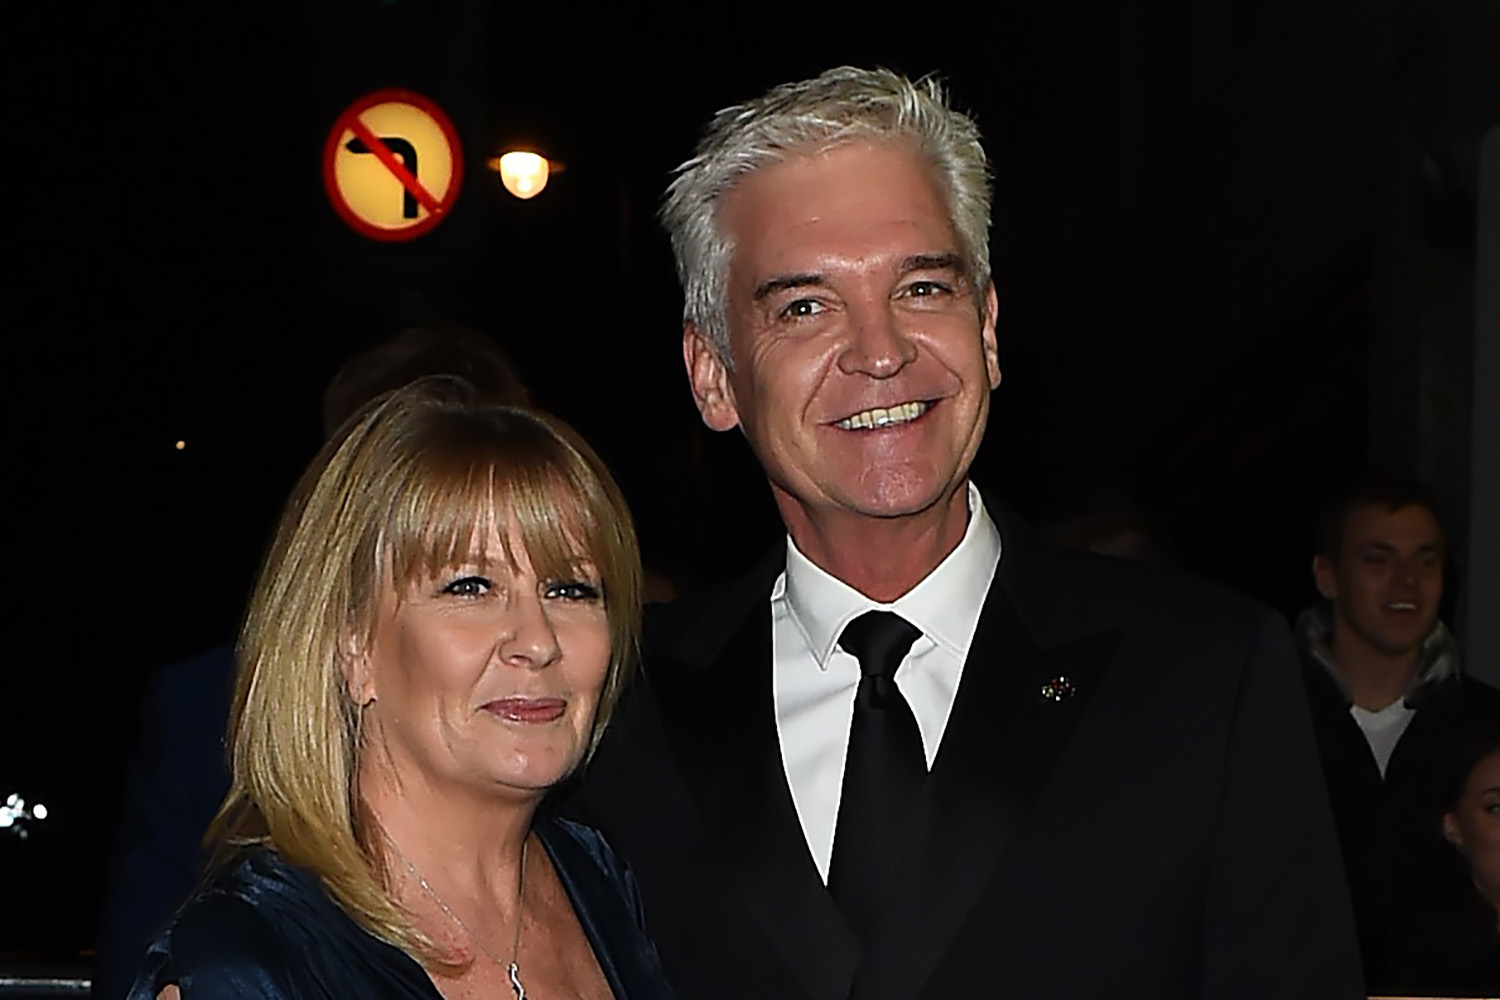 Phillip Schofield's wife gives him a haircut in lockdown